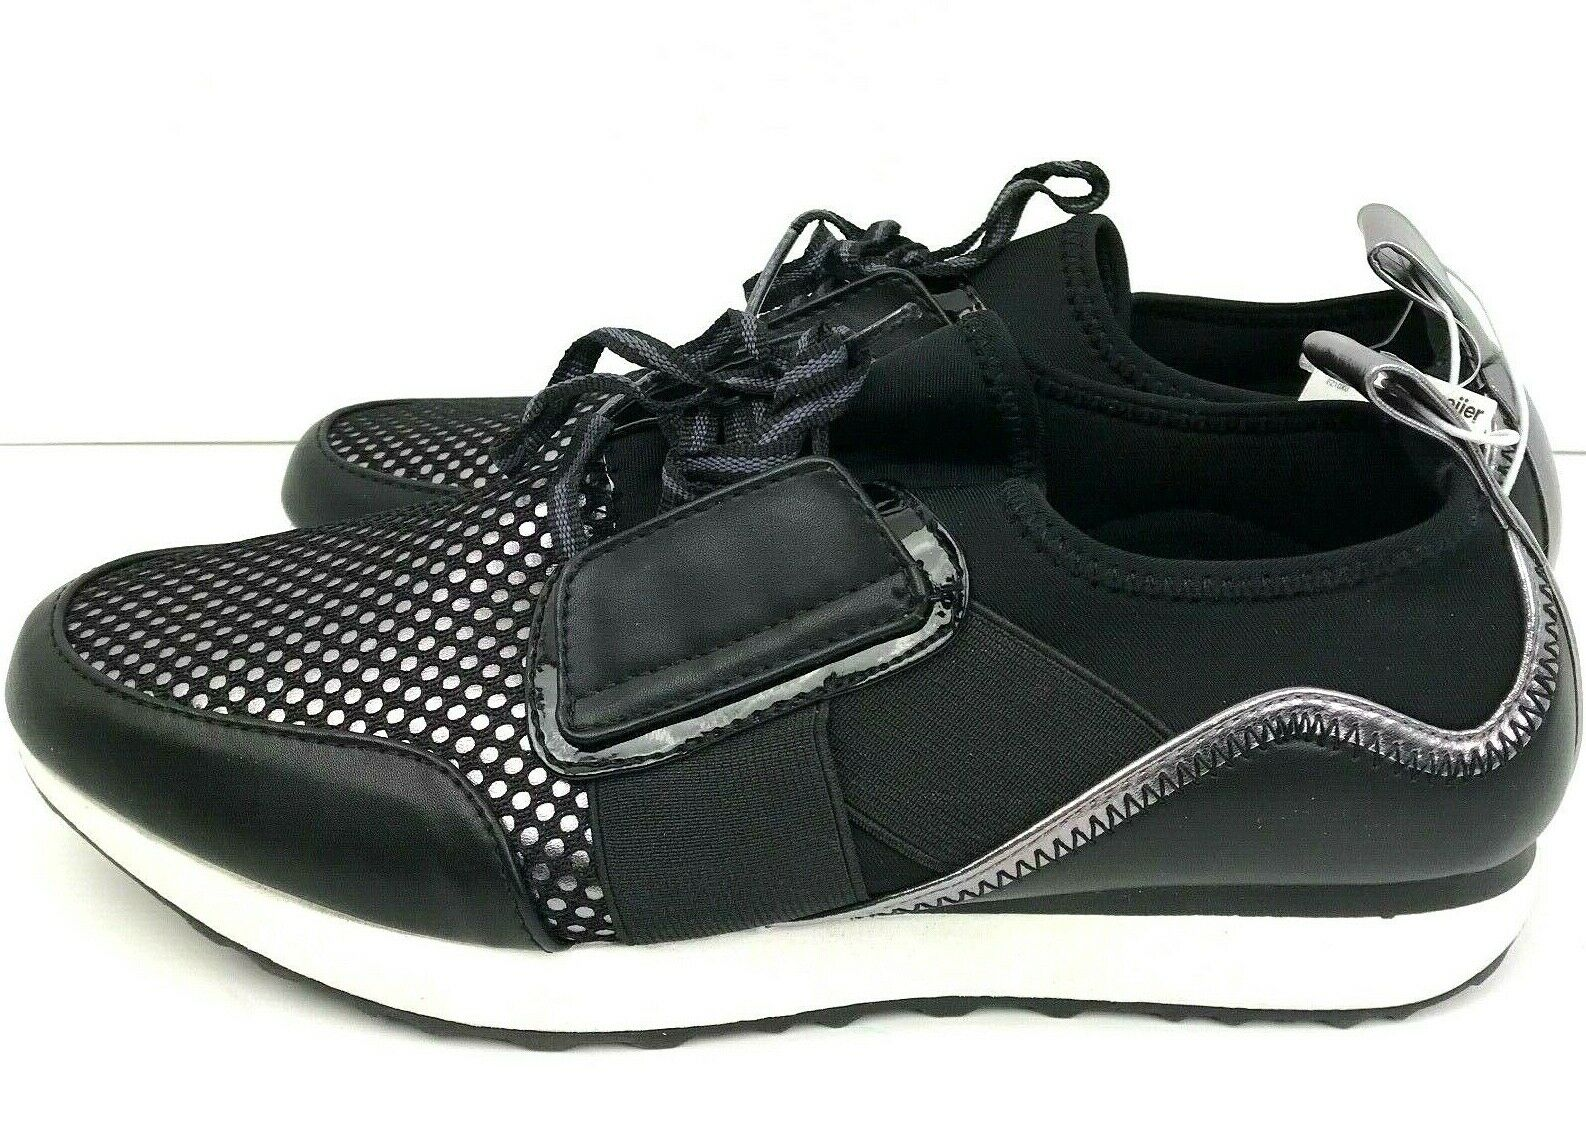 Massini Size 8 Womans Dressy Tennis shoes Black And Silver color Is Amy Black